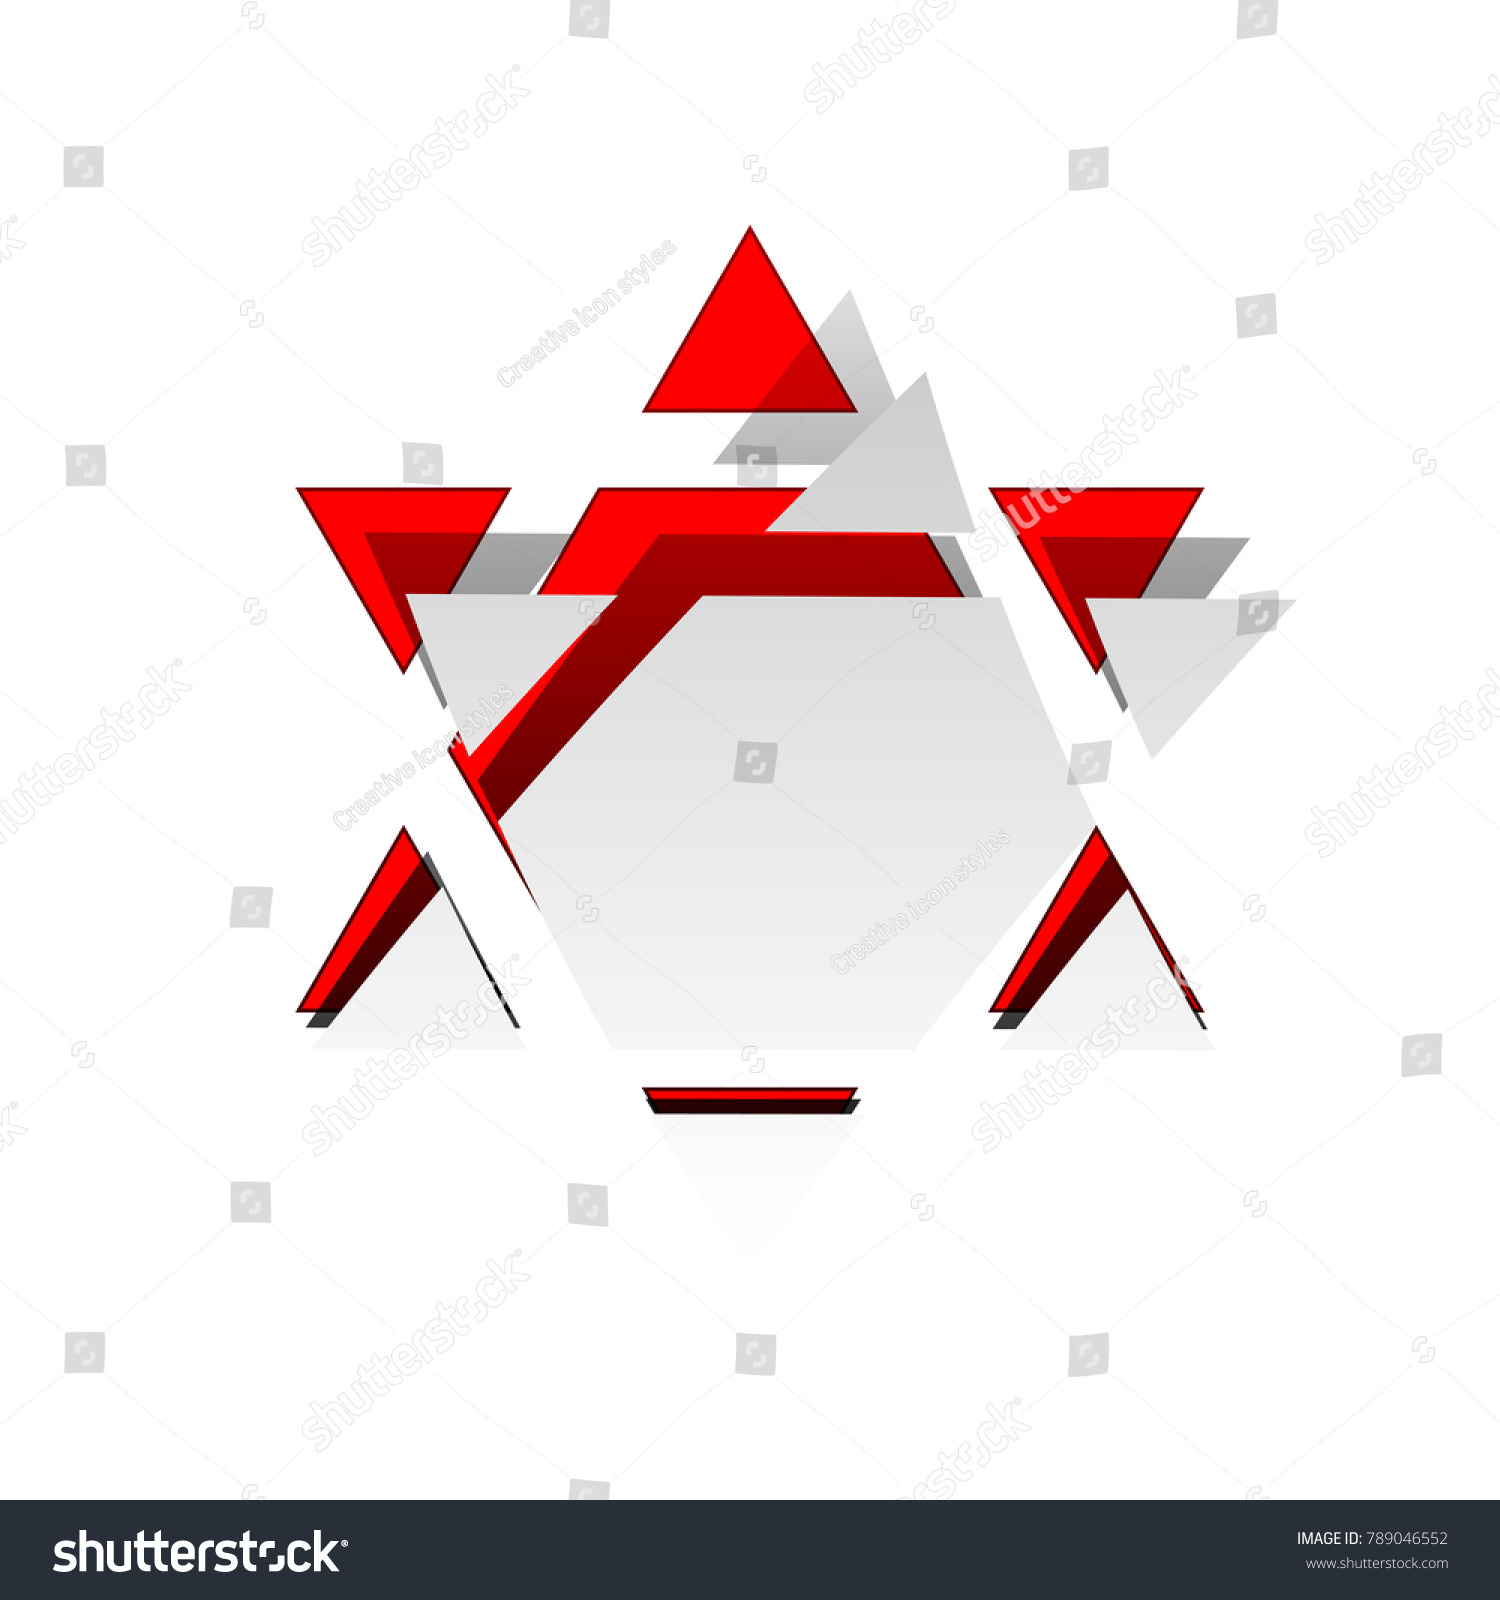 Inverted triangle symbol gallery symbol and sign ideas shield magen david star inverse symbol stock vector 789046552 shield magen david star inverse symbol of buycottarizona